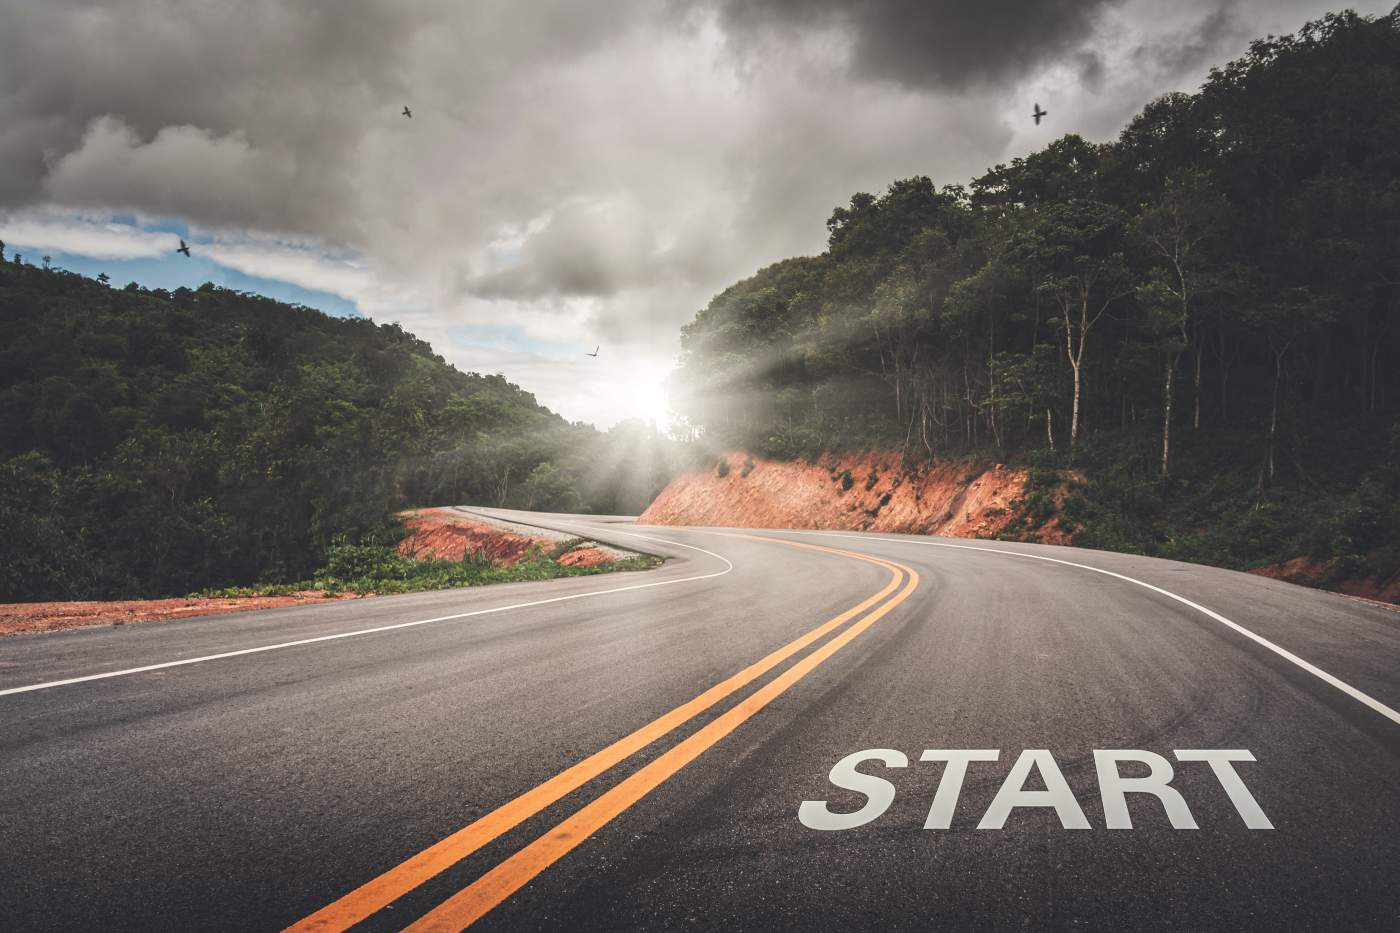 Start point on the road of business or your life success